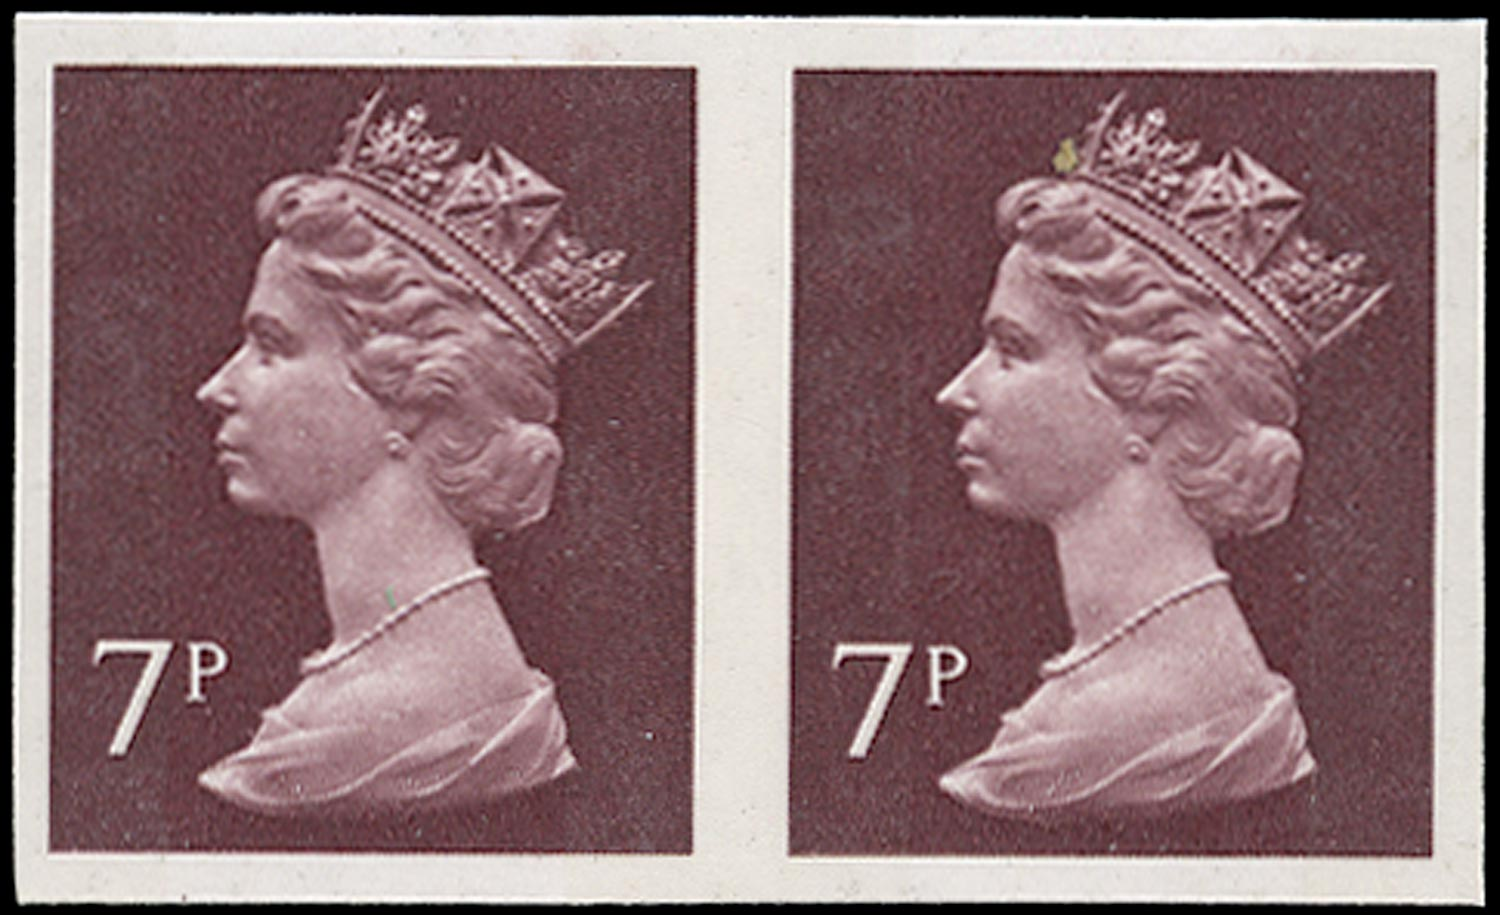 GB 1975  SGX874a Mint imperforate horizontal pair